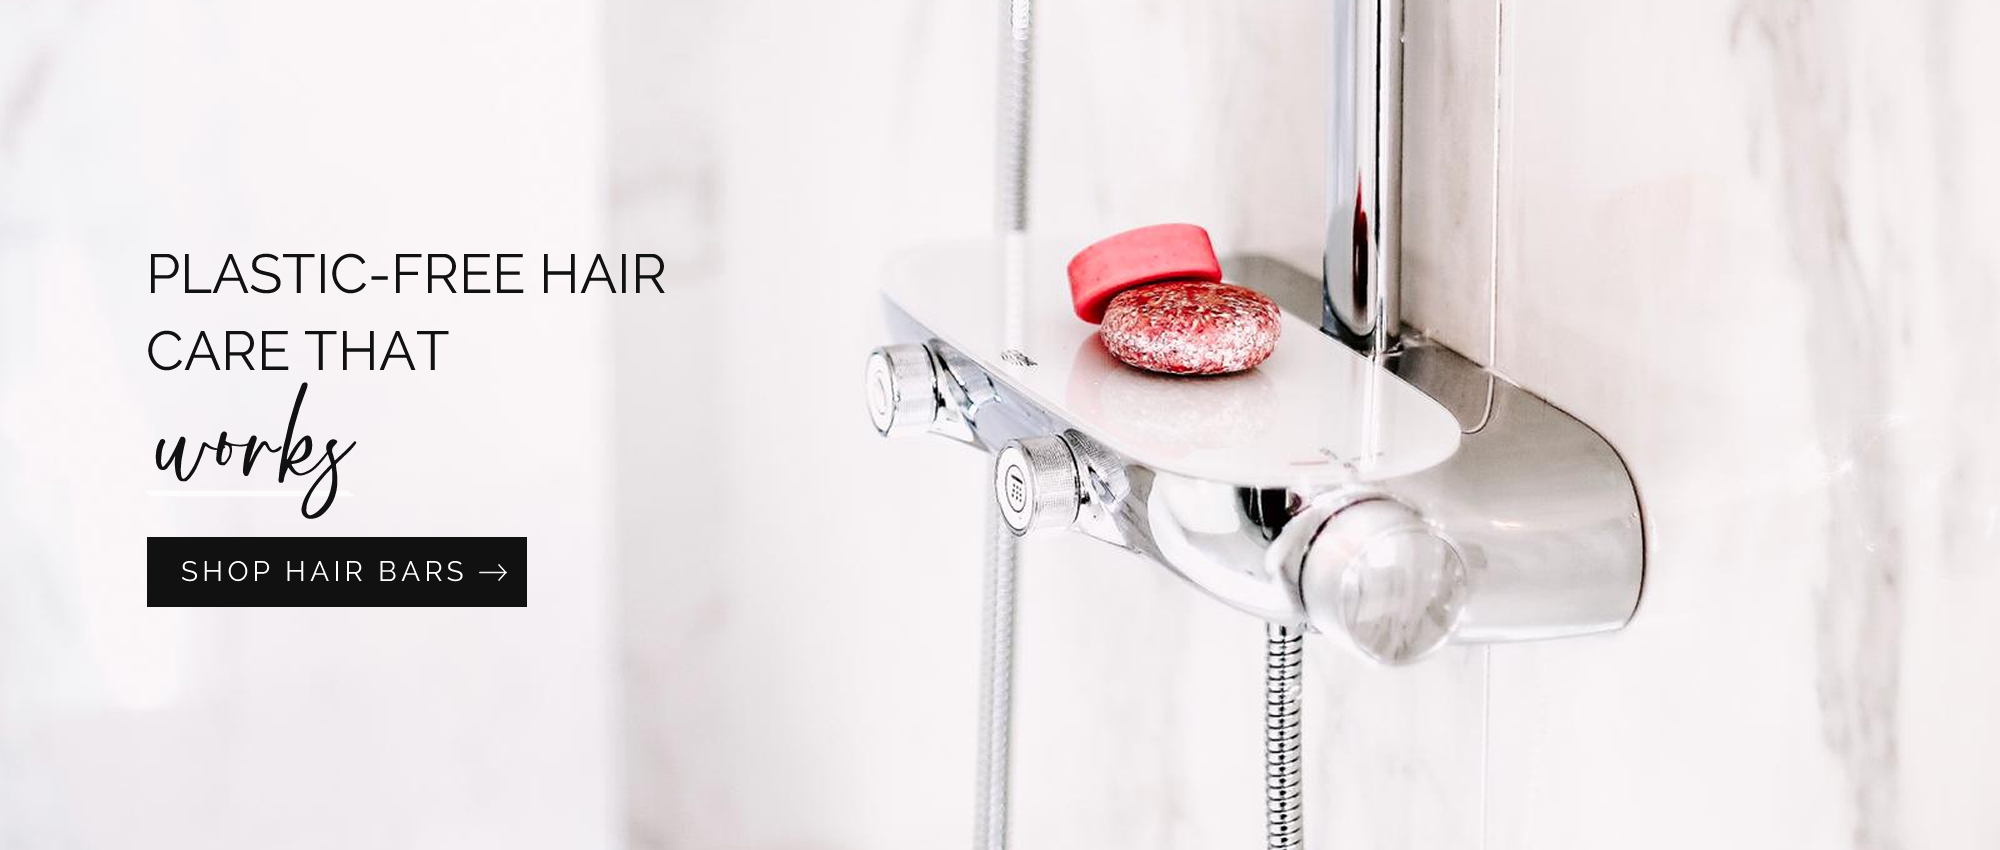 ZERO-WASTE HAIR CARE, SUSTAINABLE PRODUCTS FOR BODY + HOME